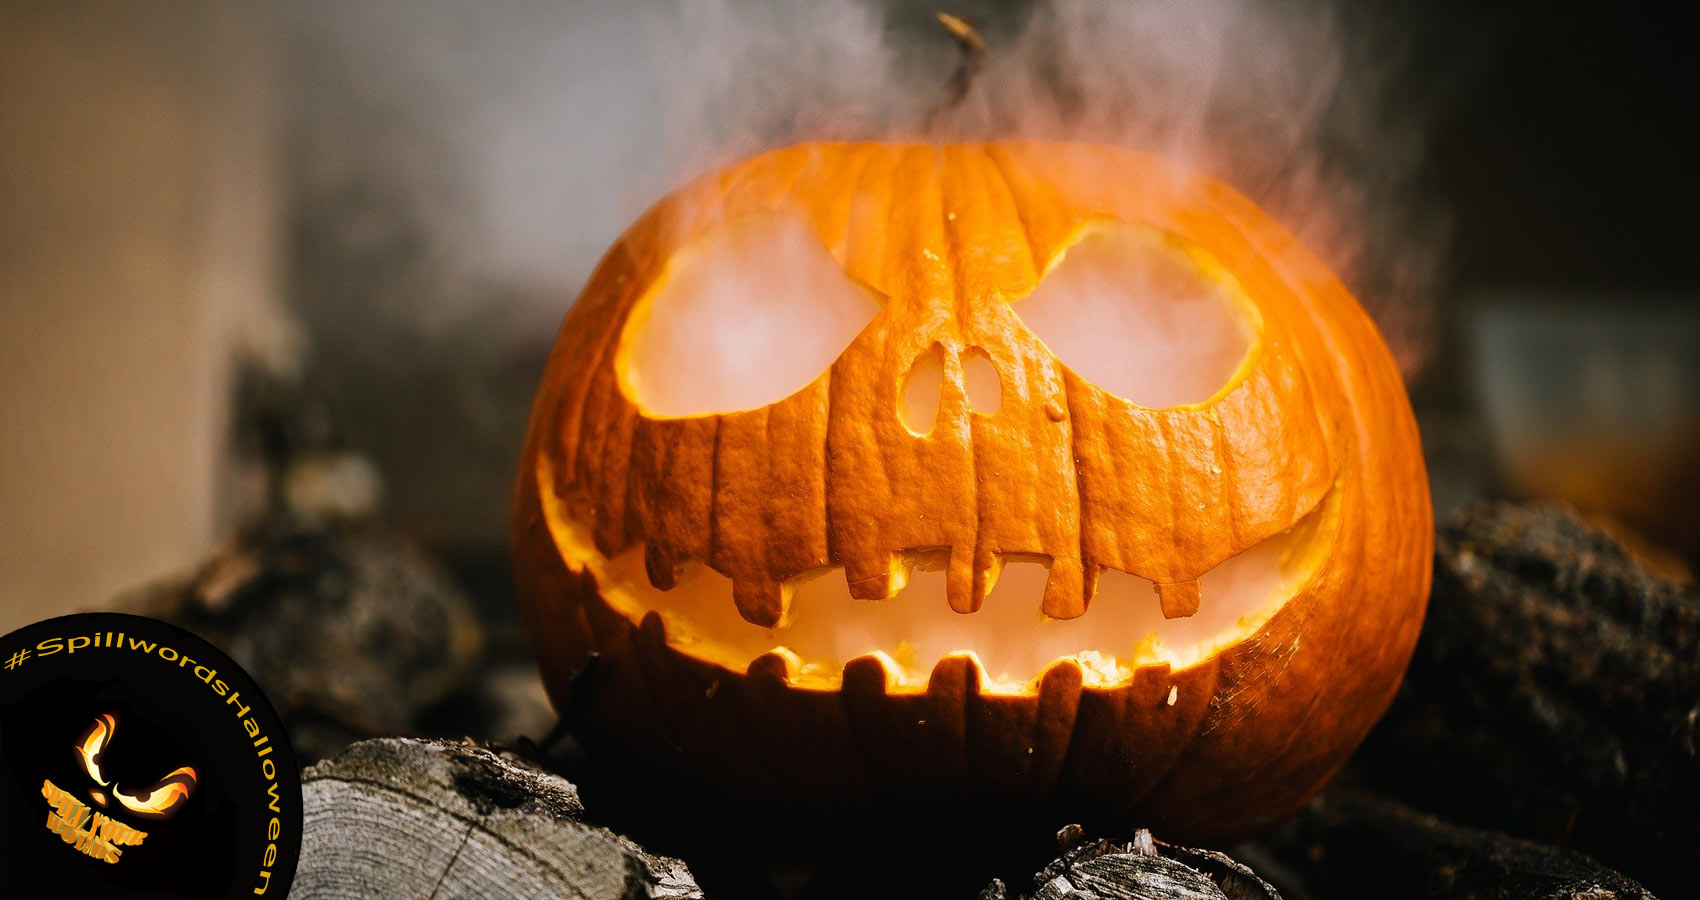 Jack-o'-Lantern, poetry written by Ingrid at Spillwords.com